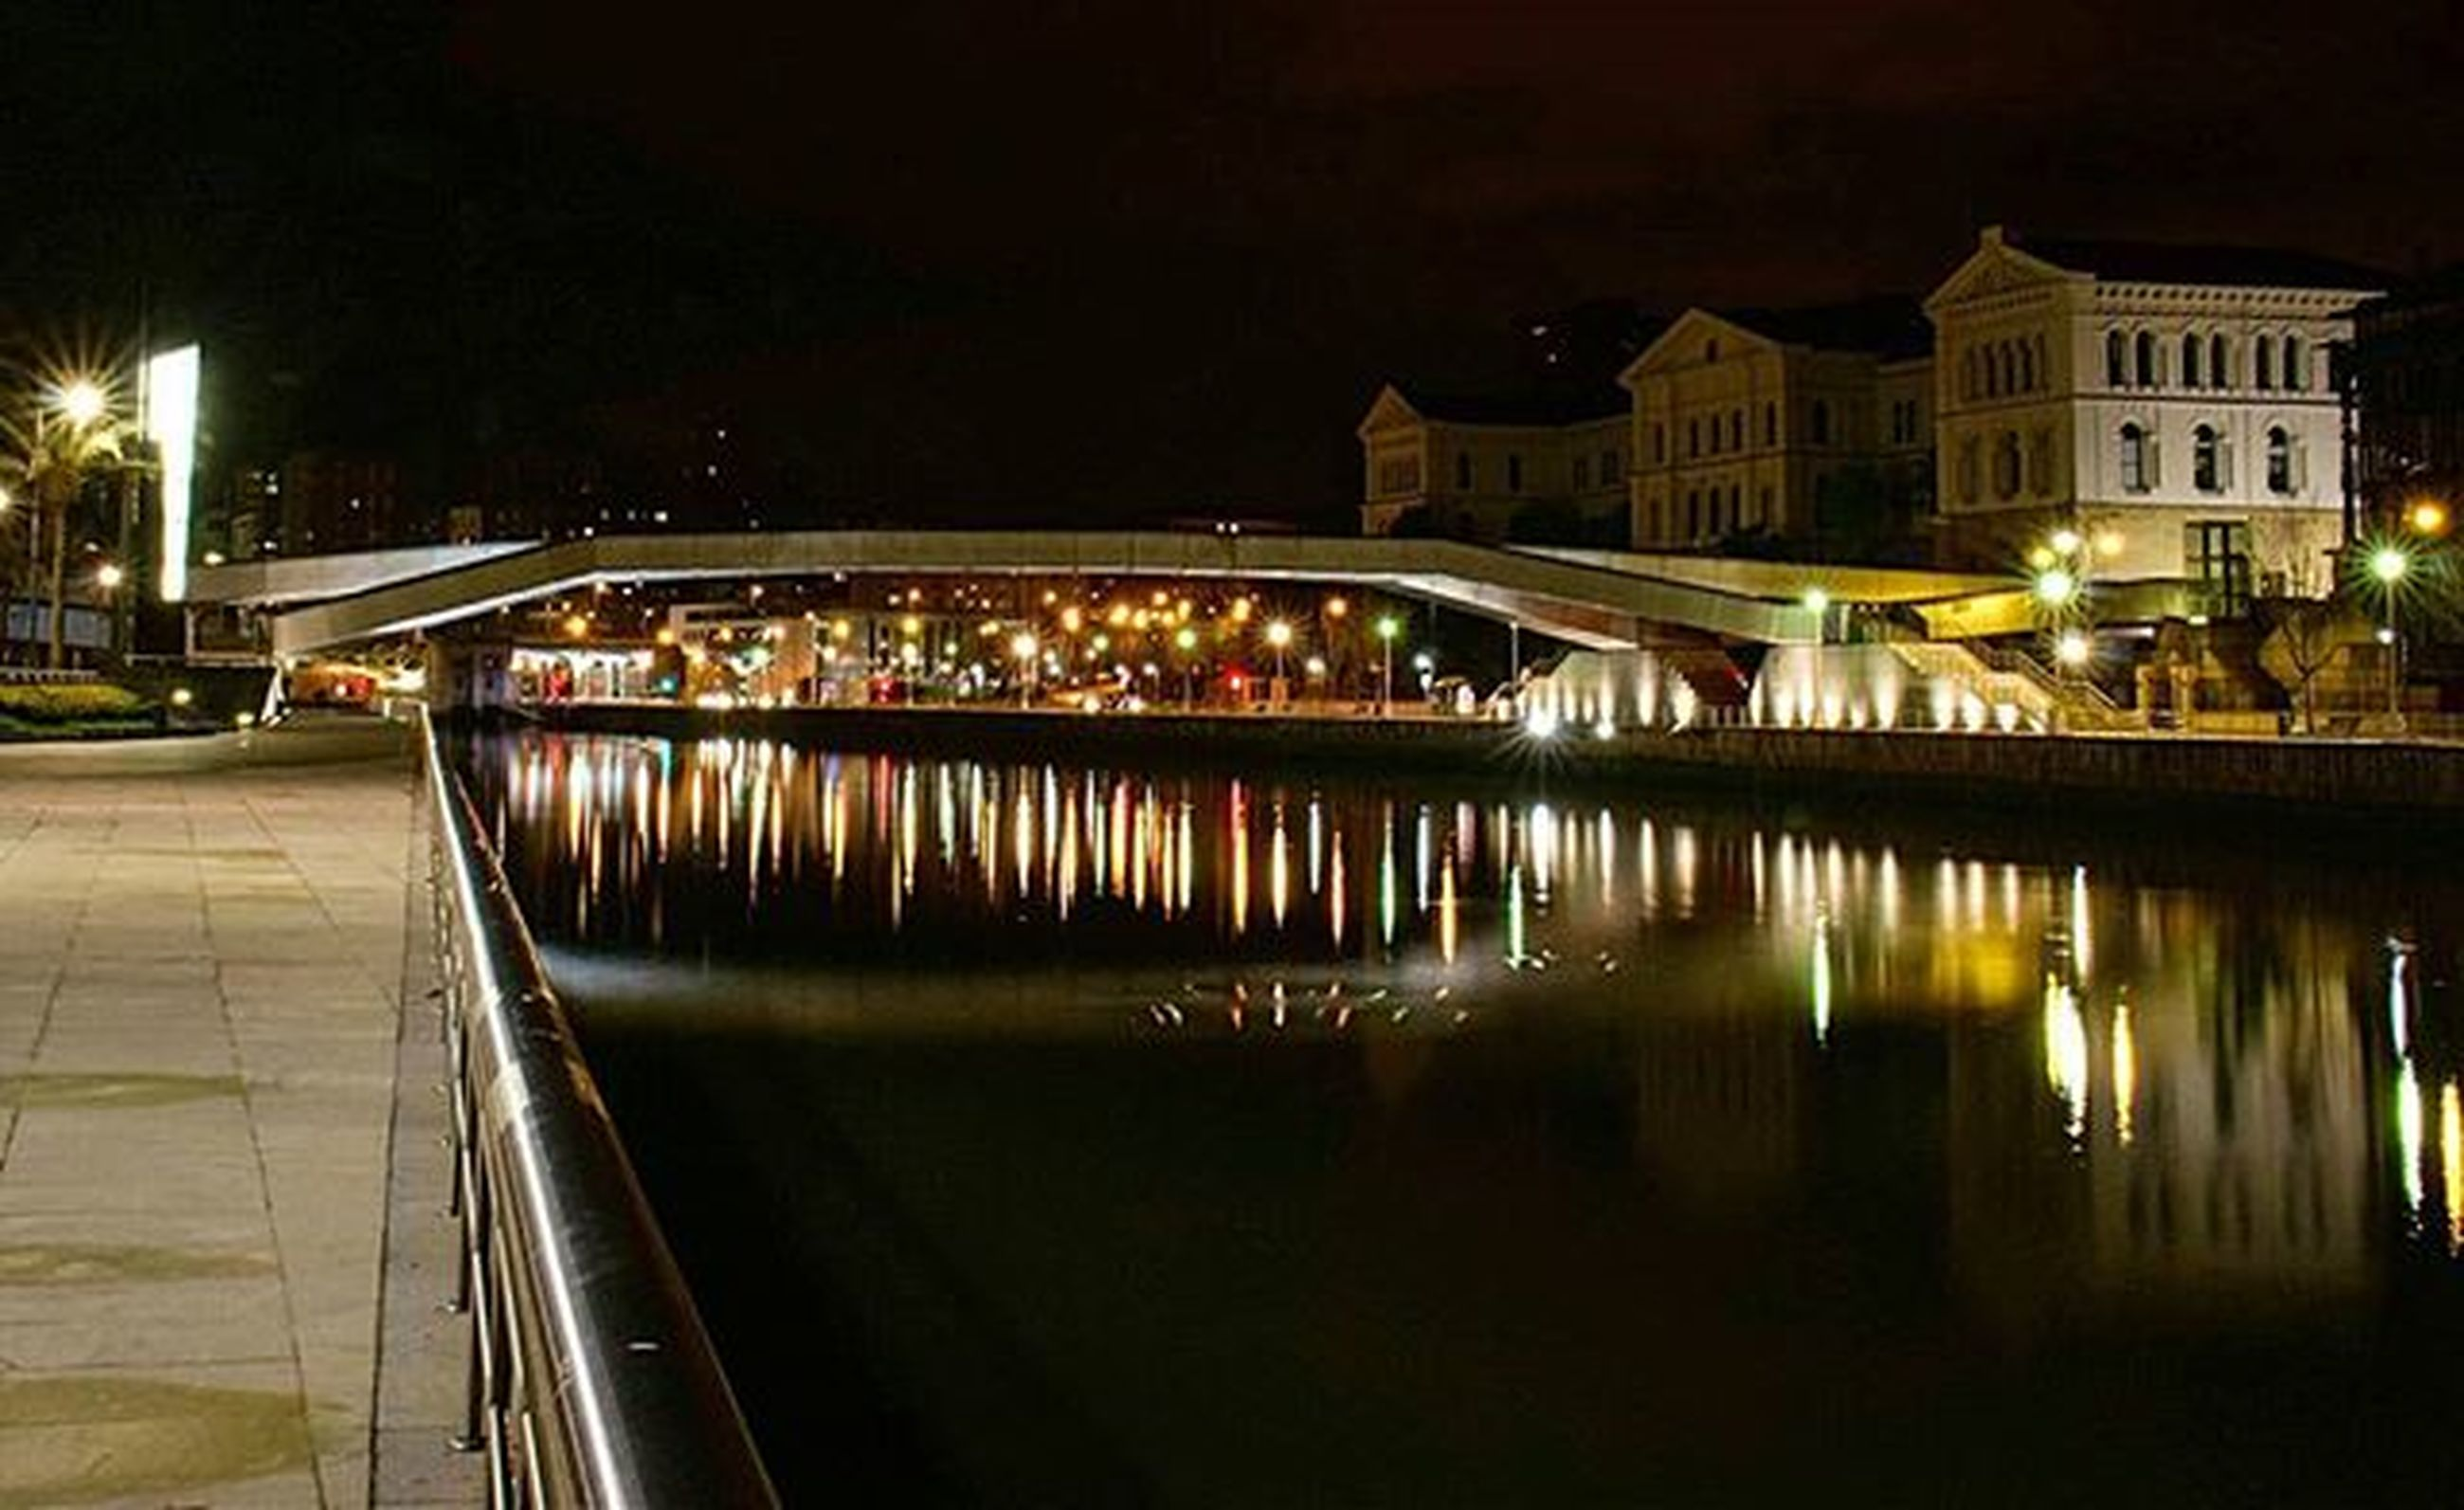 illuminated, night, architecture, built structure, water, building exterior, reflection, city, river, waterfront, street light, lighting equipment, bridge - man made structure, city life, connection, transportation, canal, outdoors, sky, bridge